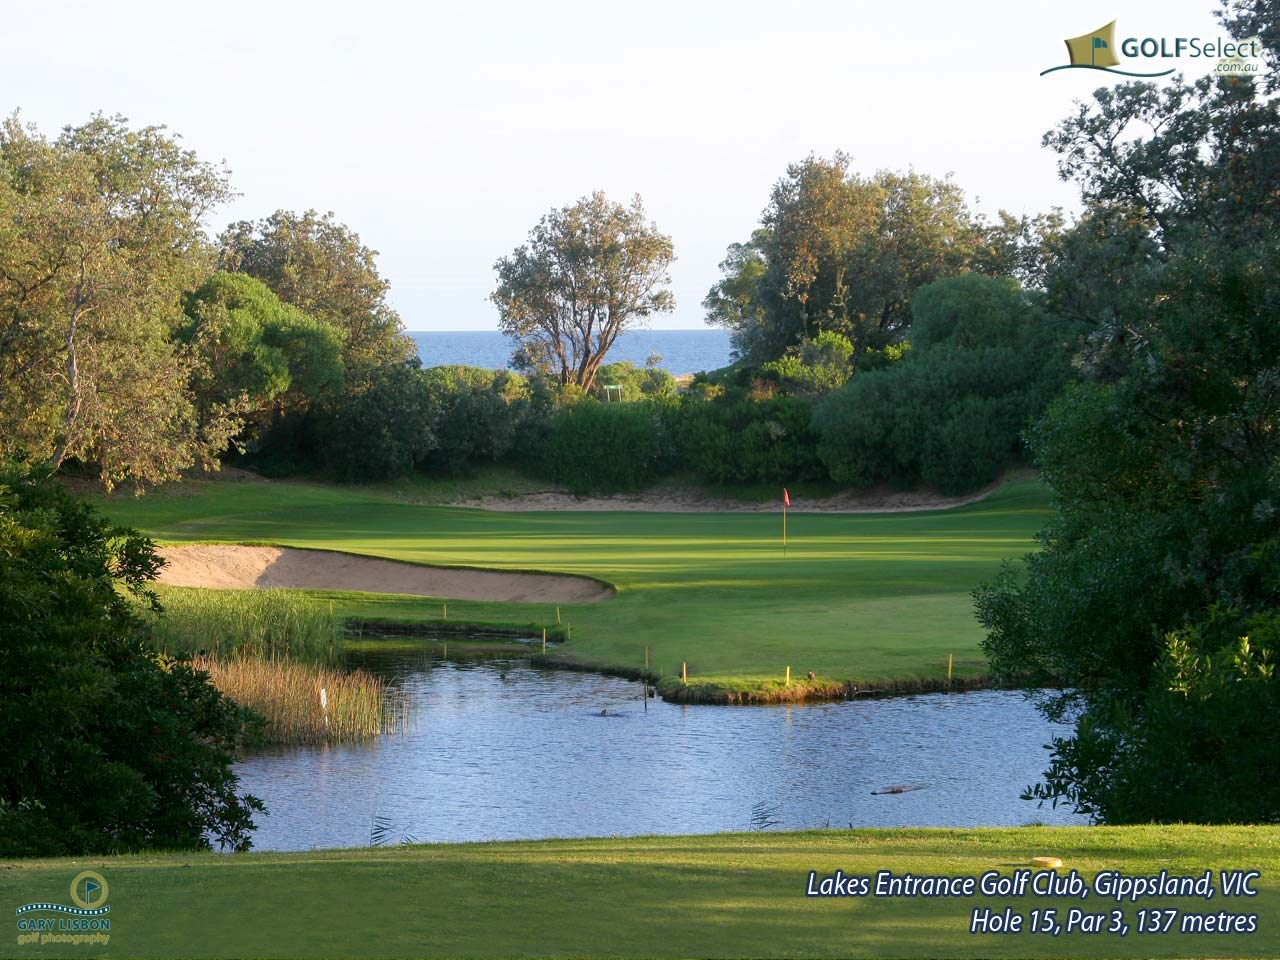 Lakes Entrance Golf Club Hole 15, Par 3, 137 metres